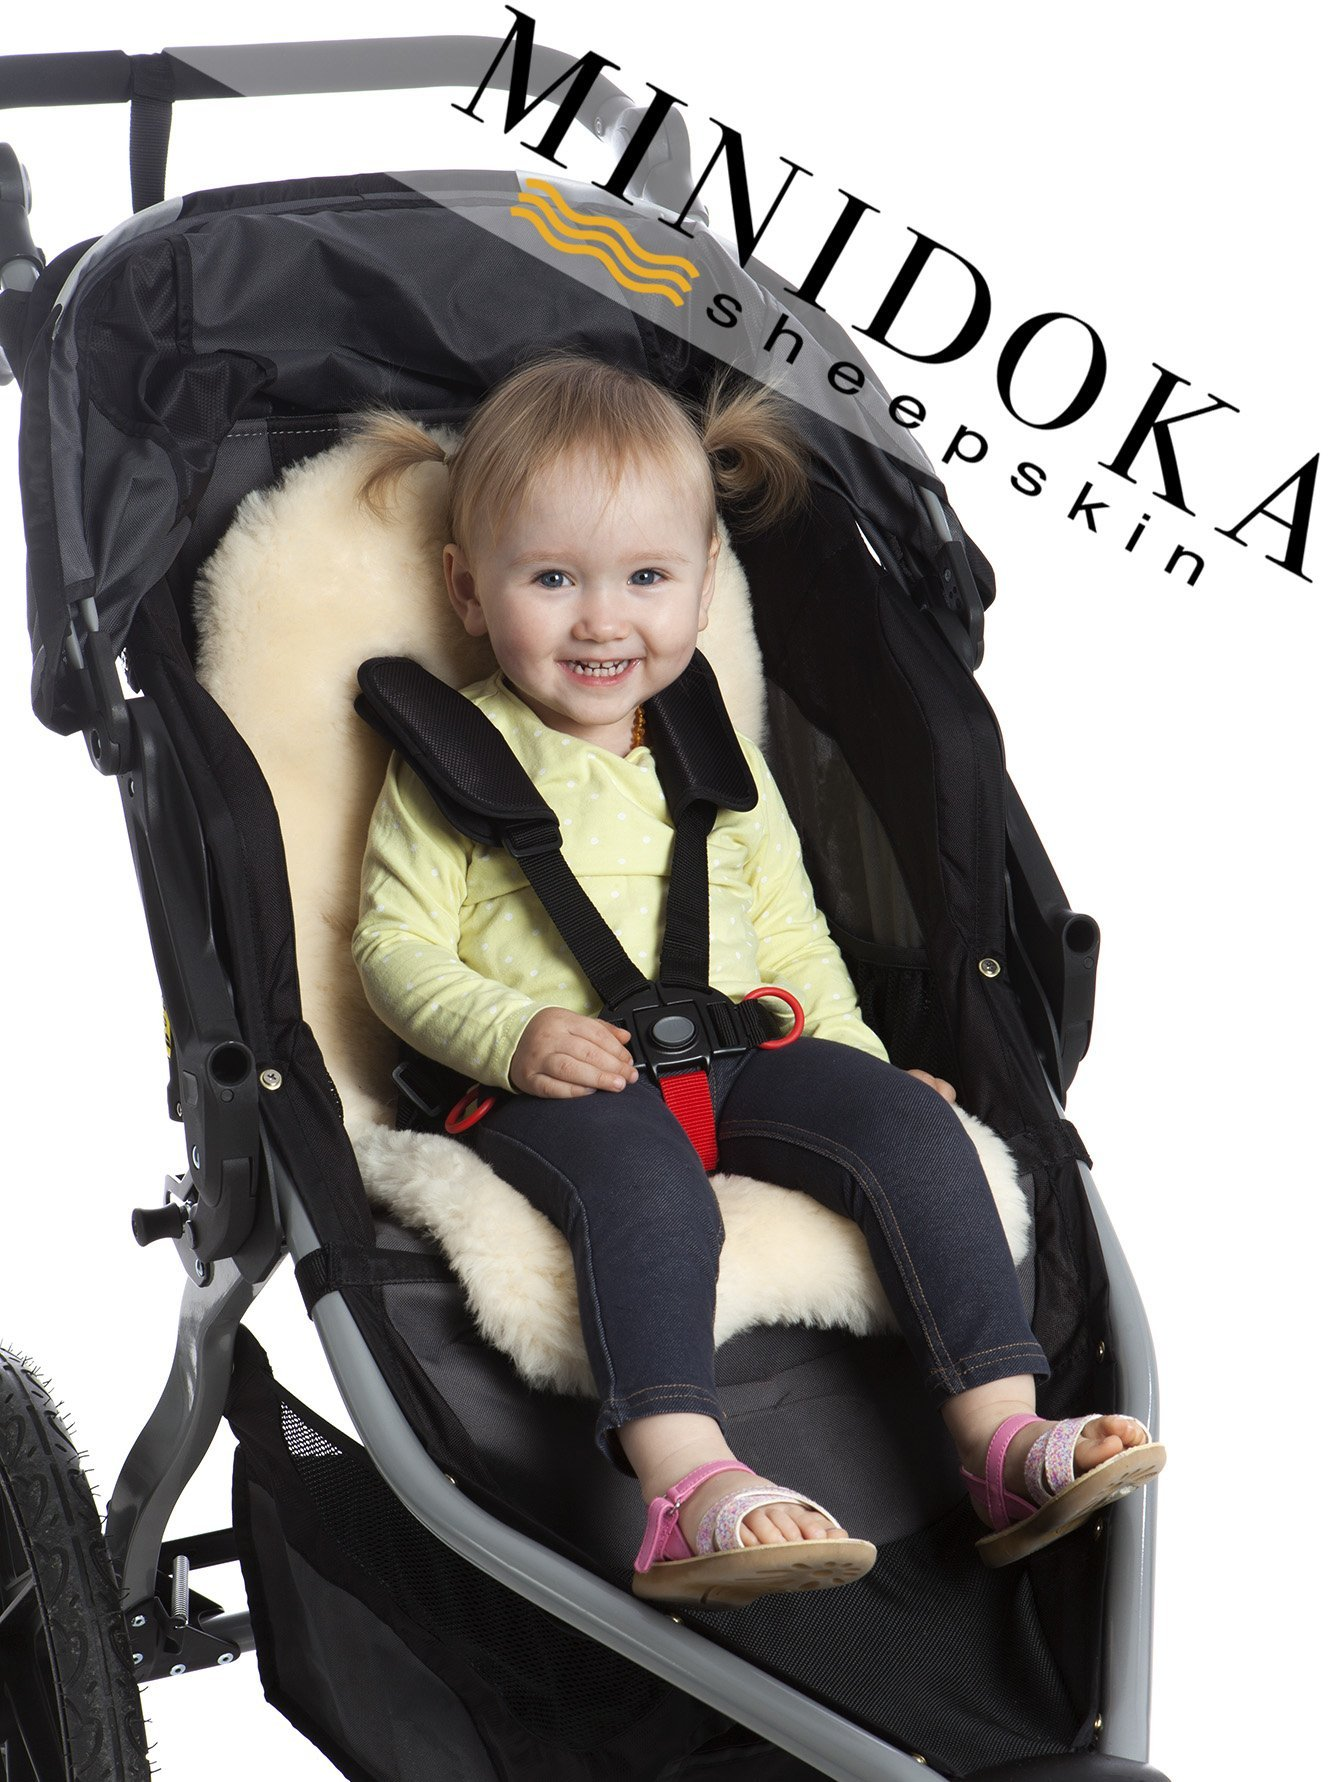 Lambskin Stroller Liner/Seat Cover/Naturally Breathable for Year Round Comfort, Easy Universal Fit, by Minidoka Sheepskin